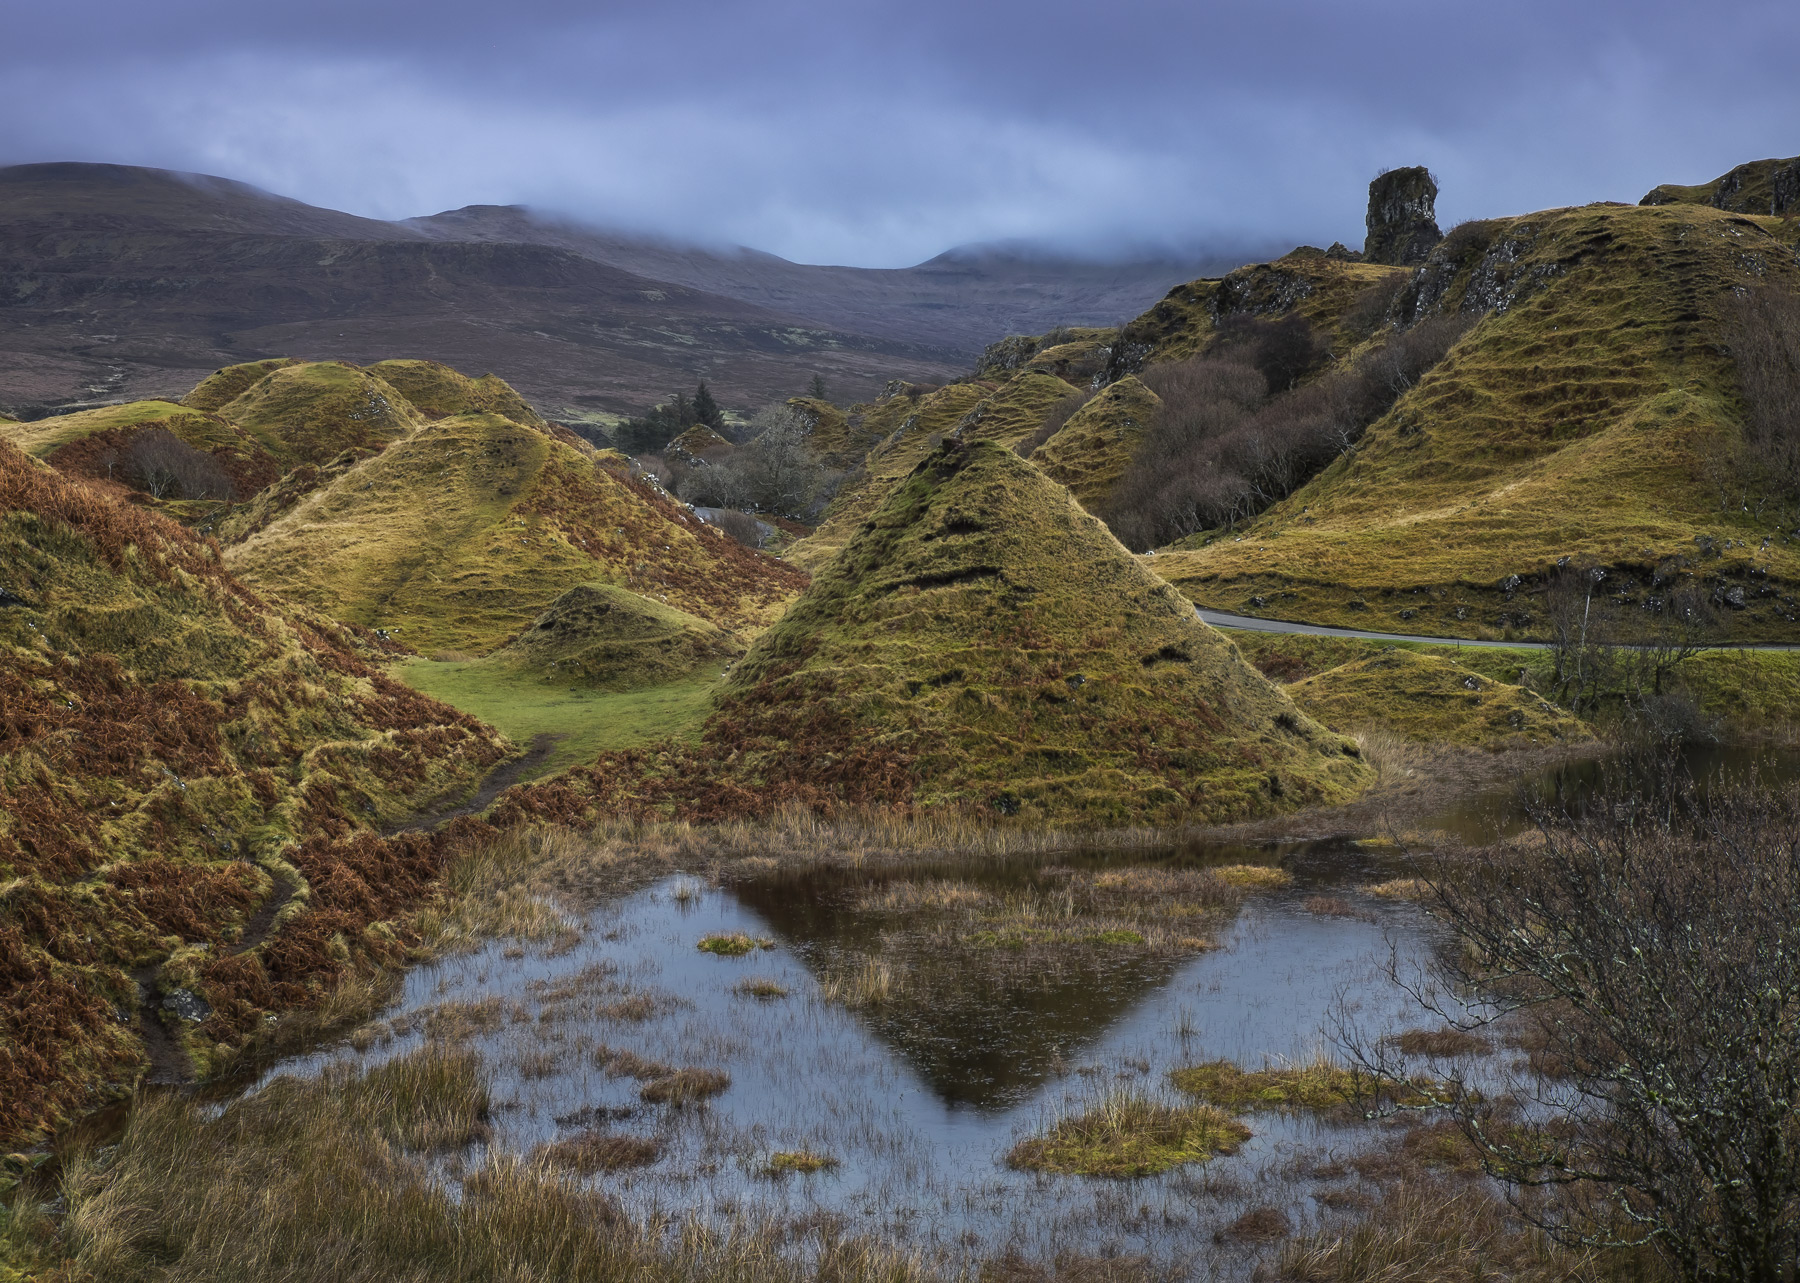 Fairy Cones, Fairy Glen, Skye, Scotland, magical, mounds, conical, eroded, sheep, reflections, winter, heavy cloud, suns, photo